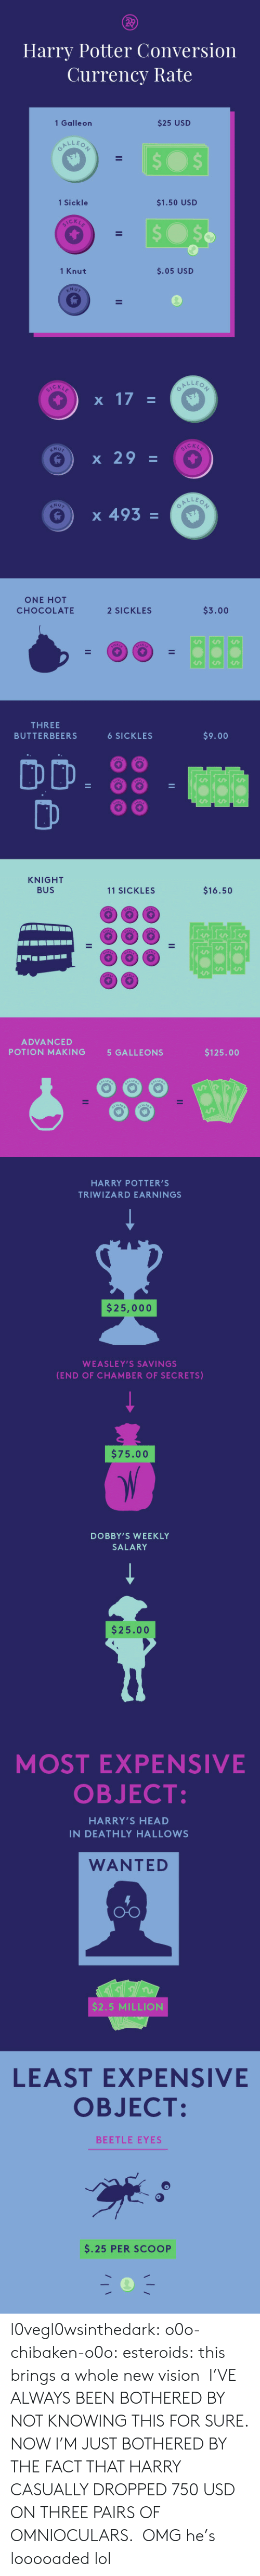 Harry Potter, Head, and Lol: Harry Potter Conversion  Currency Rate  1 Galle on  $25 USD  1 Sickle  $1.50 USD  CK  1 Knut  $.05 USD  C K L  CKL  x 29  LLE o  e ) x 493   ONE HOT  CHOCOLATE  2 SICKLES  $3.00  THREE  BUTTERBEERS  6 SICKLES  $9.00  DD·88  KNIGHT  BUS  11 SICKLES  $16.50  ADVANCED  POTION MAKING  5 GALLEONS  $125.00   HARRY POTTER'S  TRIWIZARD EARNINGS  $25,000  WEASLEY'S SAVINGS  (END OF CHAMBER OF SECRETS)  $75.00  DOBBY'S WEEKLY  SALARY  $25.00   MOST EXPENSIVE  OBJECT  HARRY'S HEAD  IN DEATHLY HALLOWS  WANTED  O-O  $2.5 MILLION  LEAST EXPENSIVE  OBJECT:  BEETLE EYES  $.25 PER SCOOP l0vegl0wsinthedark: o0o-chibaken-o0o:   esteroids:  this brings a whole new vision  I'VE ALWAYS BEEN BOTHERED BY NOT KNOWING THIS FOR SURE. NOW I'M JUST BOTHERED BY THE FACT THAT HARRY CASUALLY DROPPED 750 USD ON THREE PAIRS OF OMNIOCULARS.   OMG he's looooaded lol